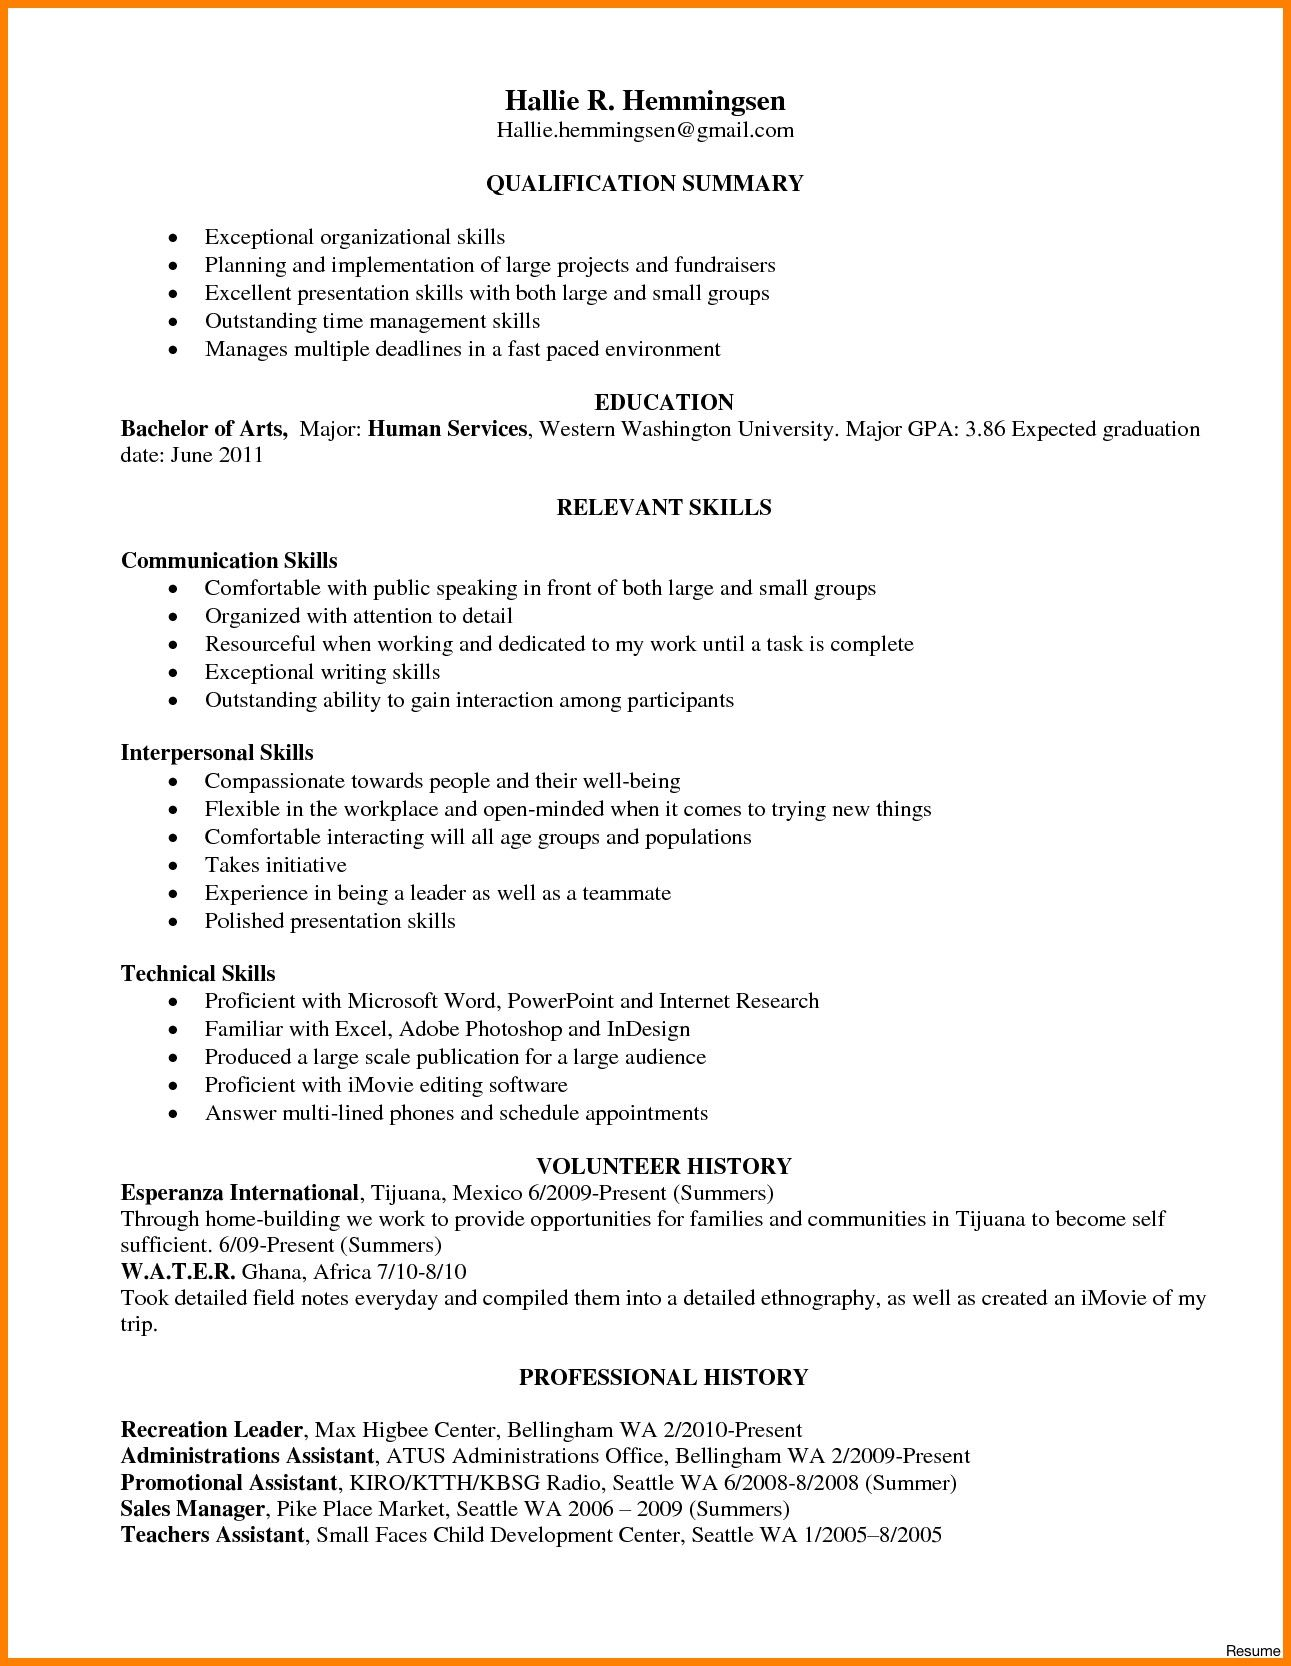 Leadership Qualities | Resume Templates | Pinterest | Leadership ...